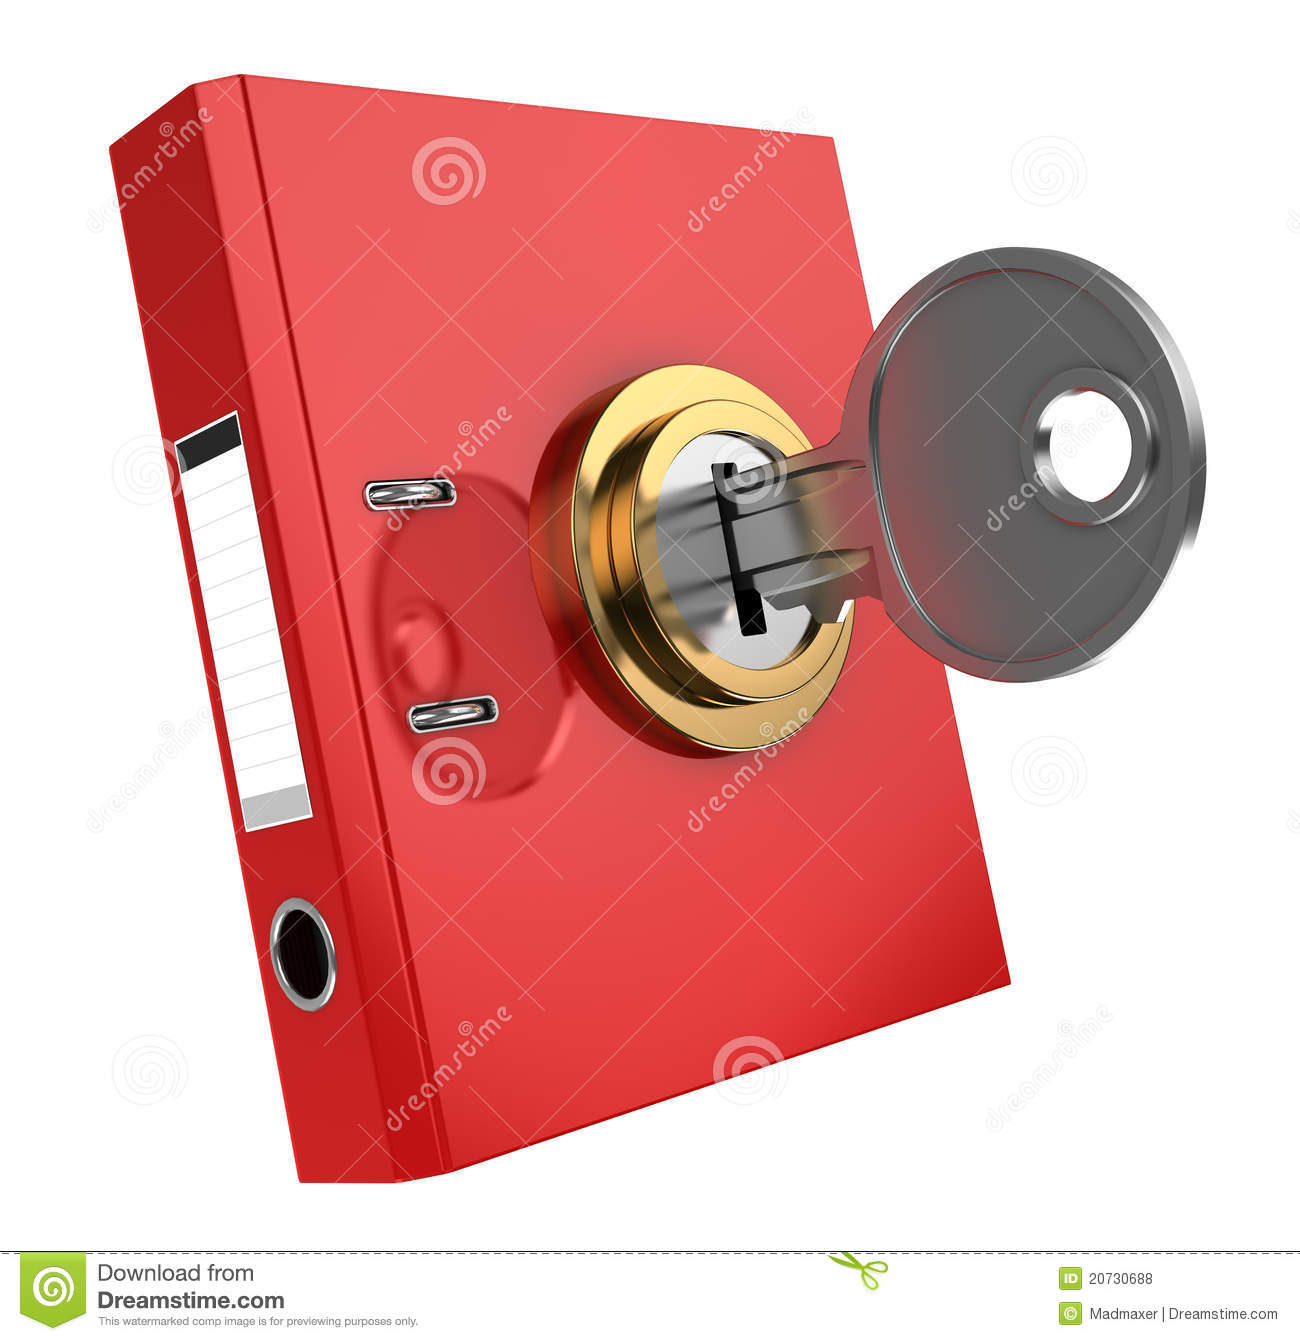 Binder folder locked stock illustration. Image of metal ...